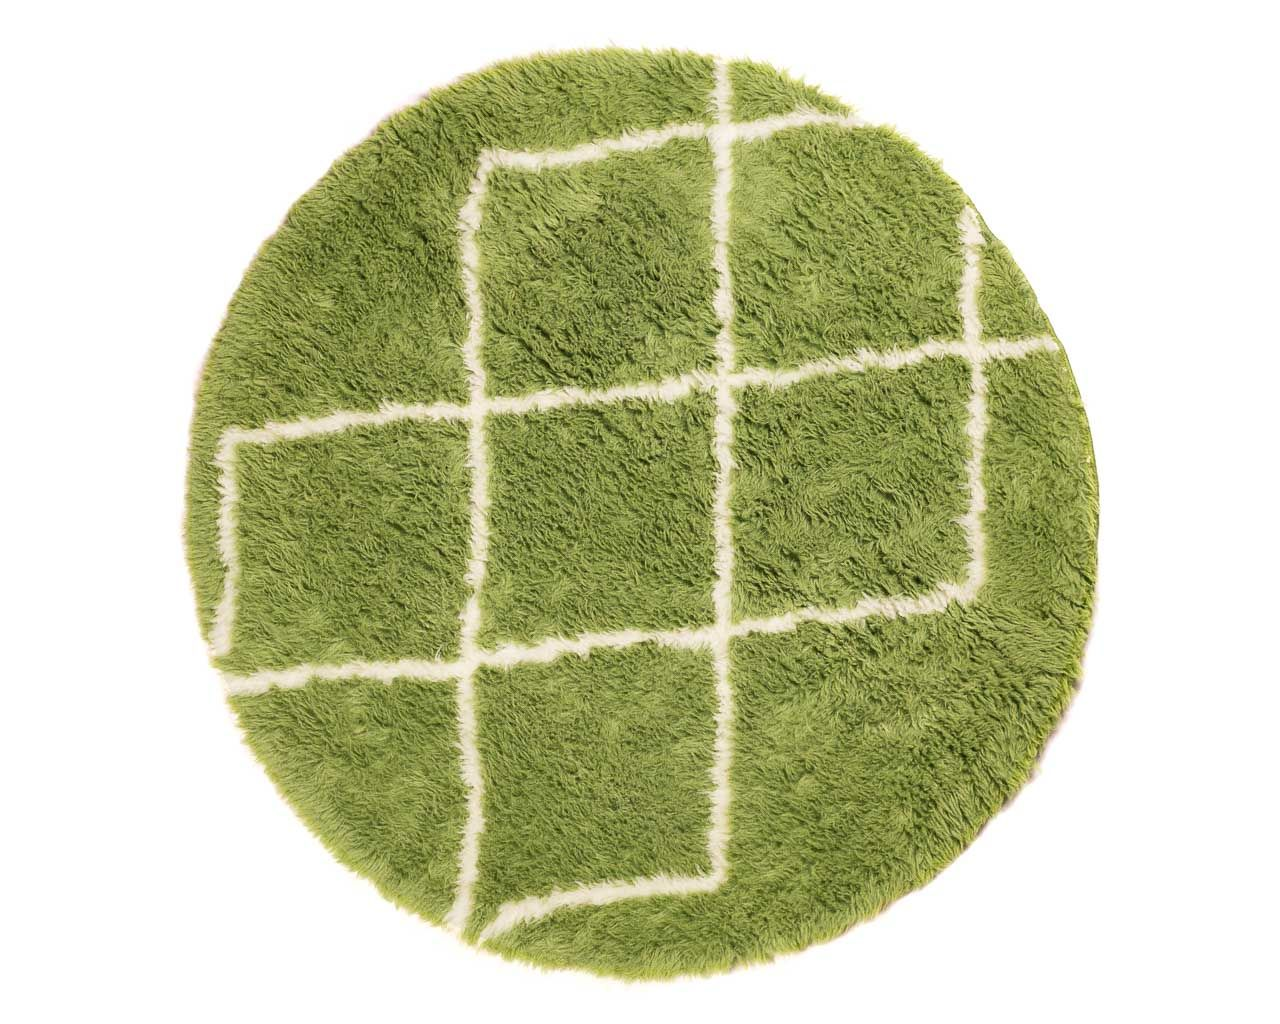 round-green-rug-with-rhombus-patterns